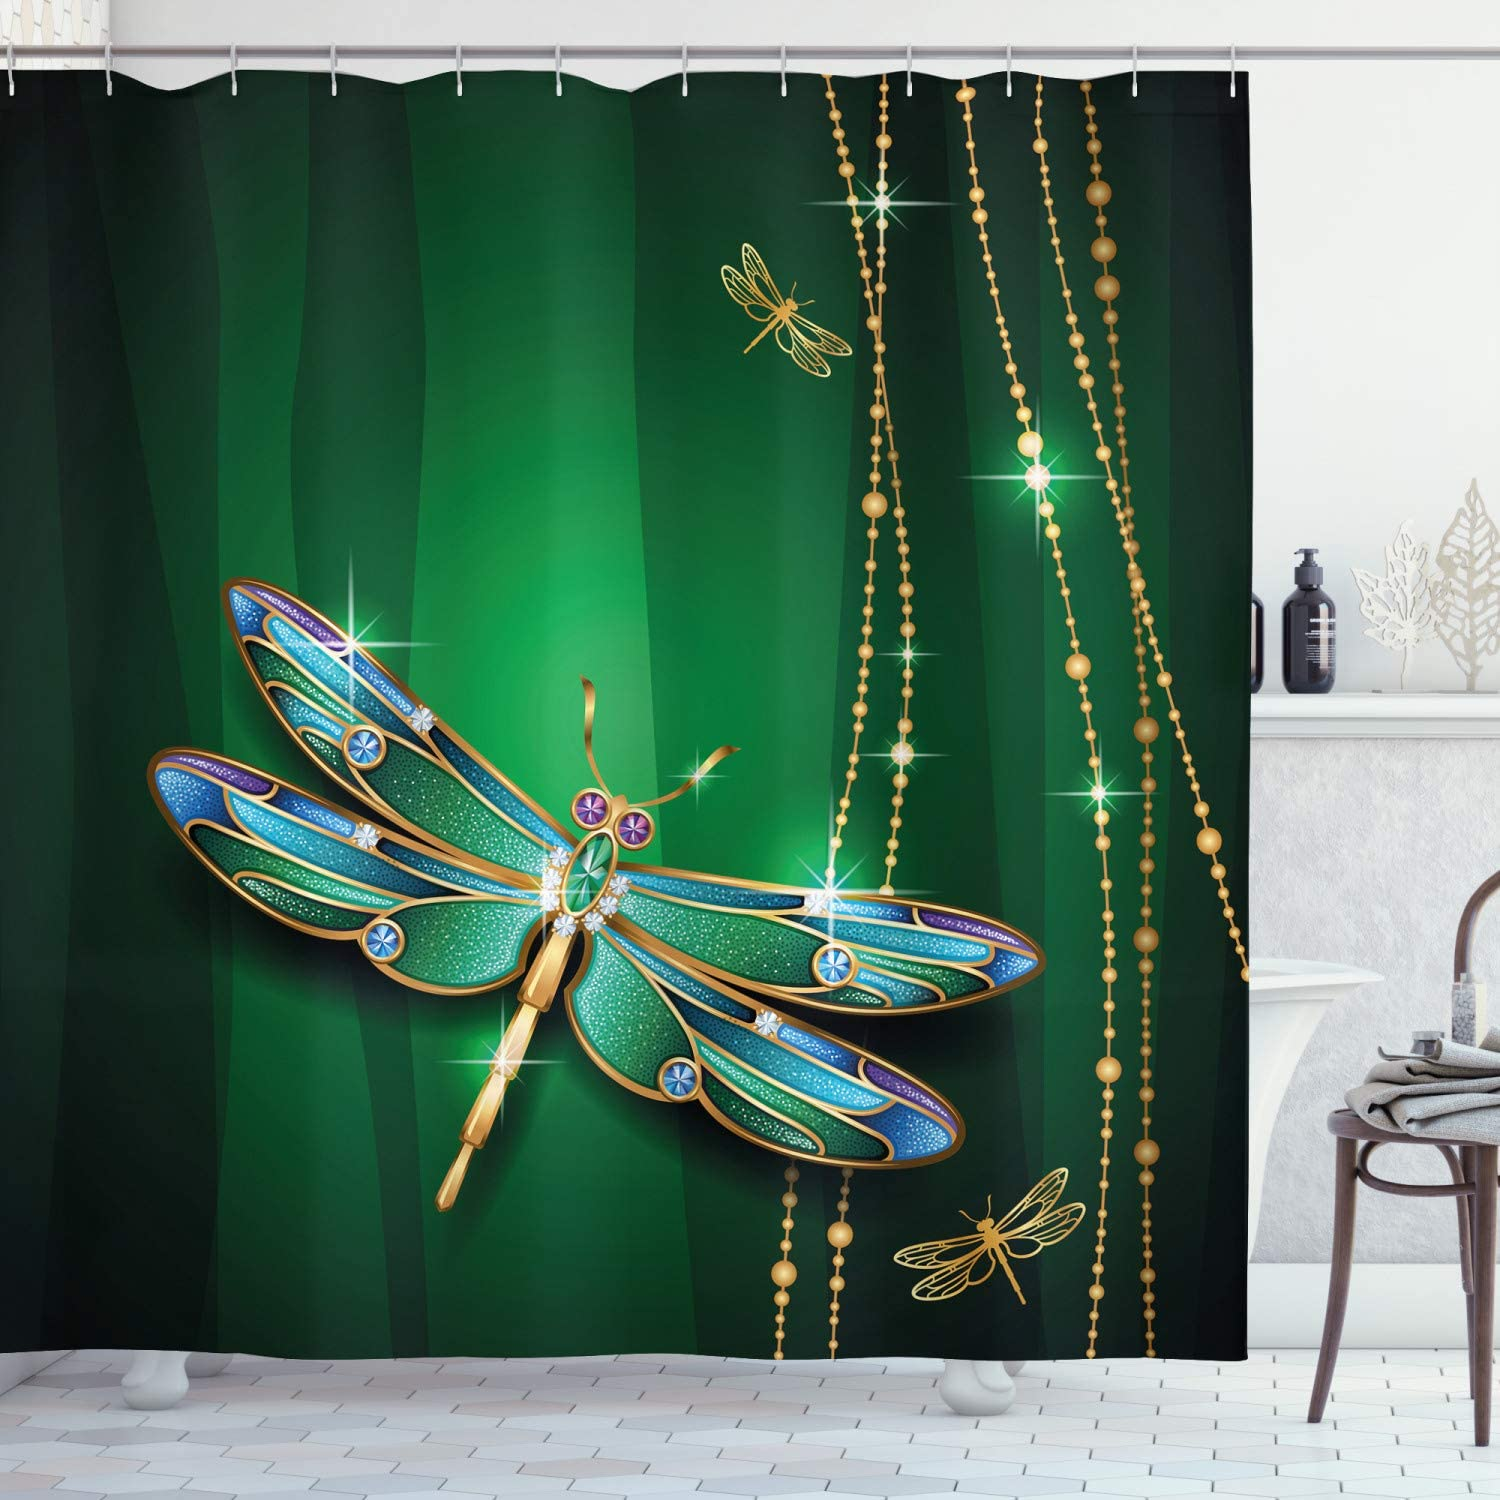 Dragonfly Insects Waterproof Bath Polyester Shower Curtain Liner Water Resistant